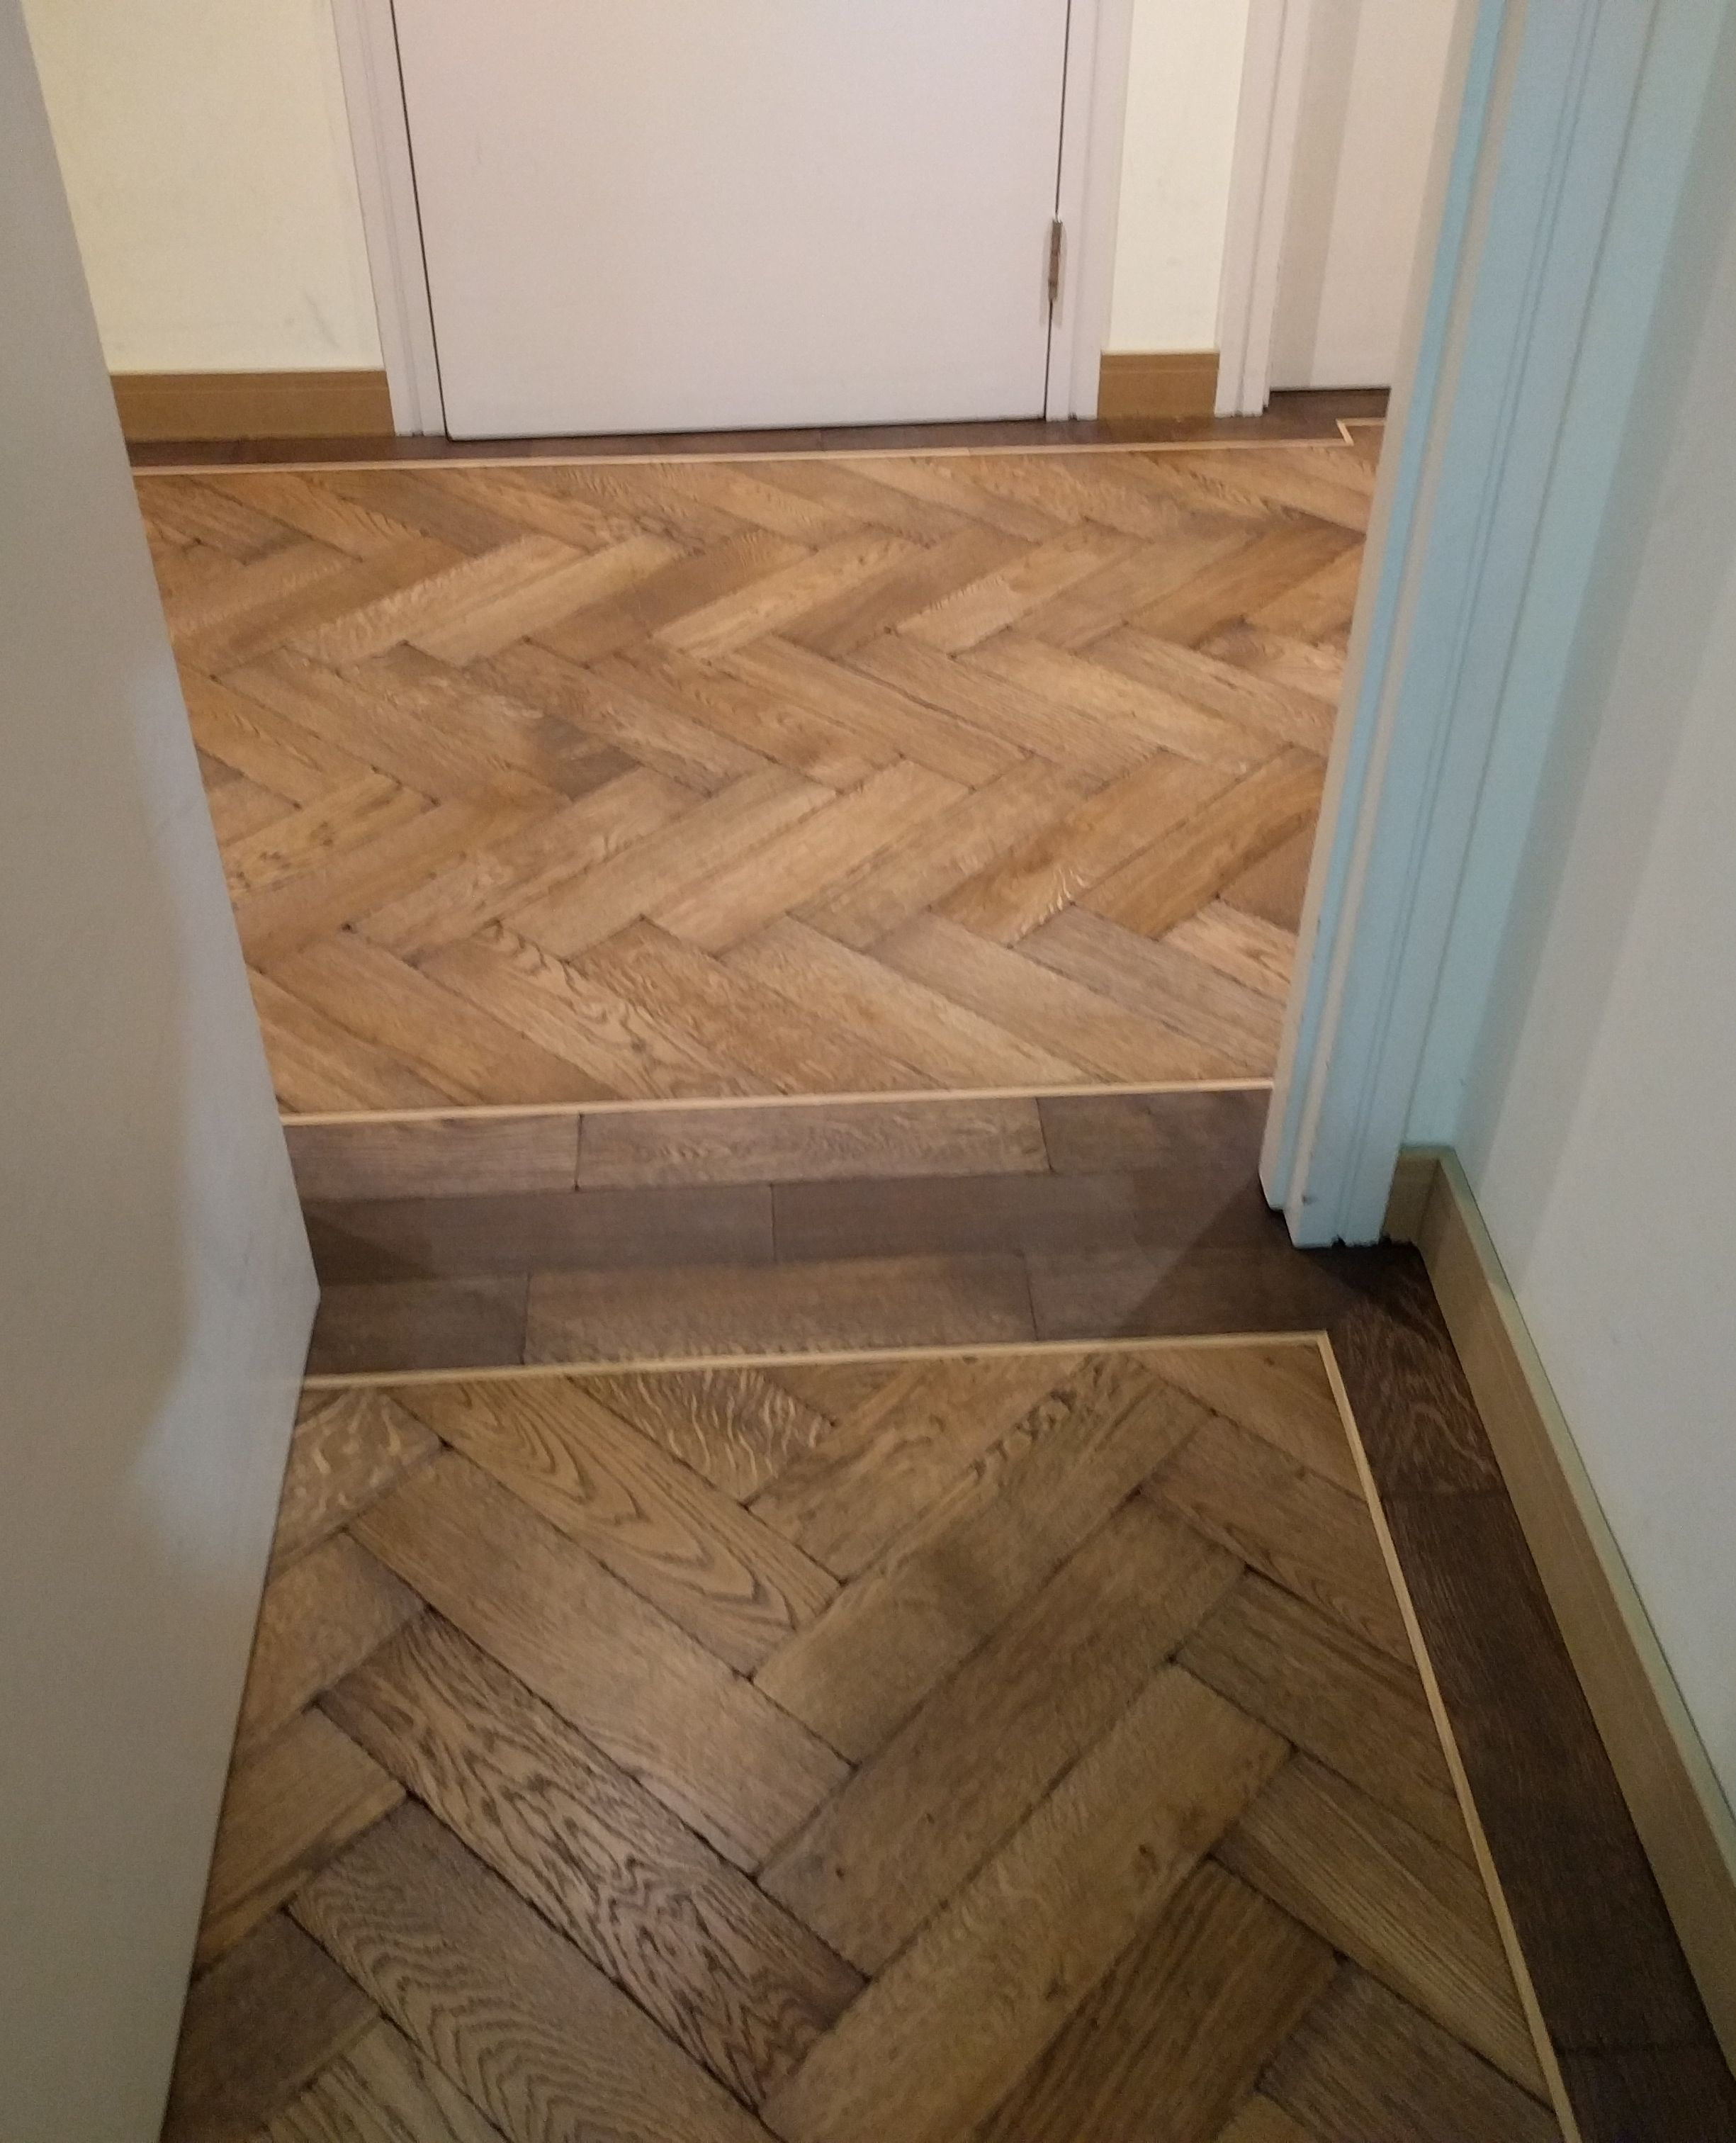 To Frame The Change In Direction Of This Wooden Floor We Created A Threshold Border To Frame The Floor R In 2020